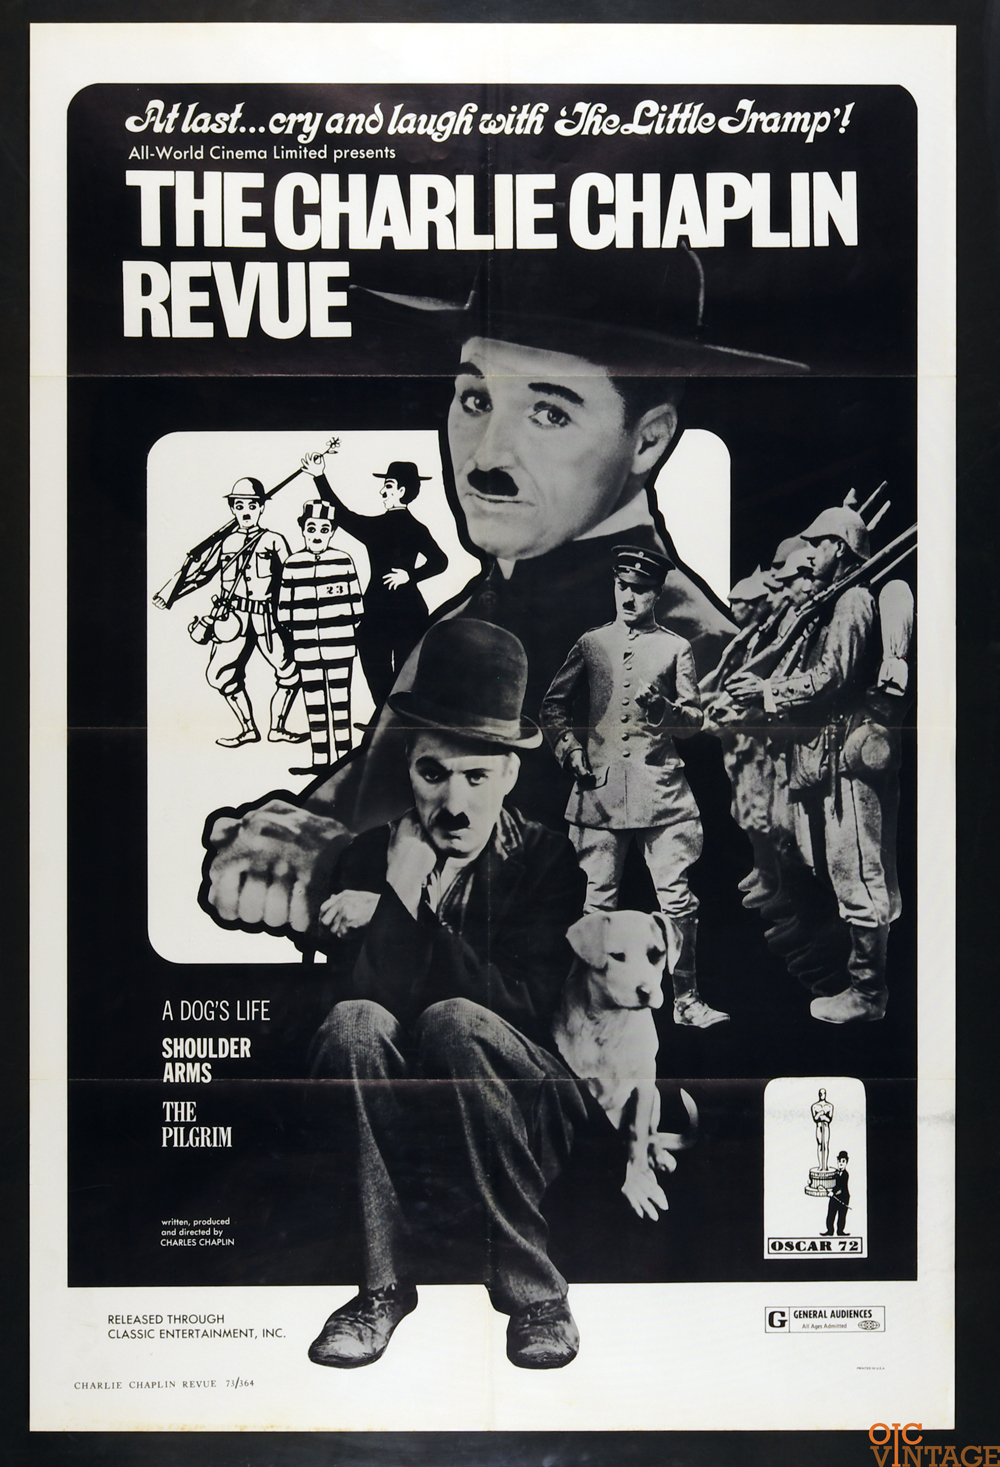 Charlie Chaplin Revue Movie Poster R1973 27x41